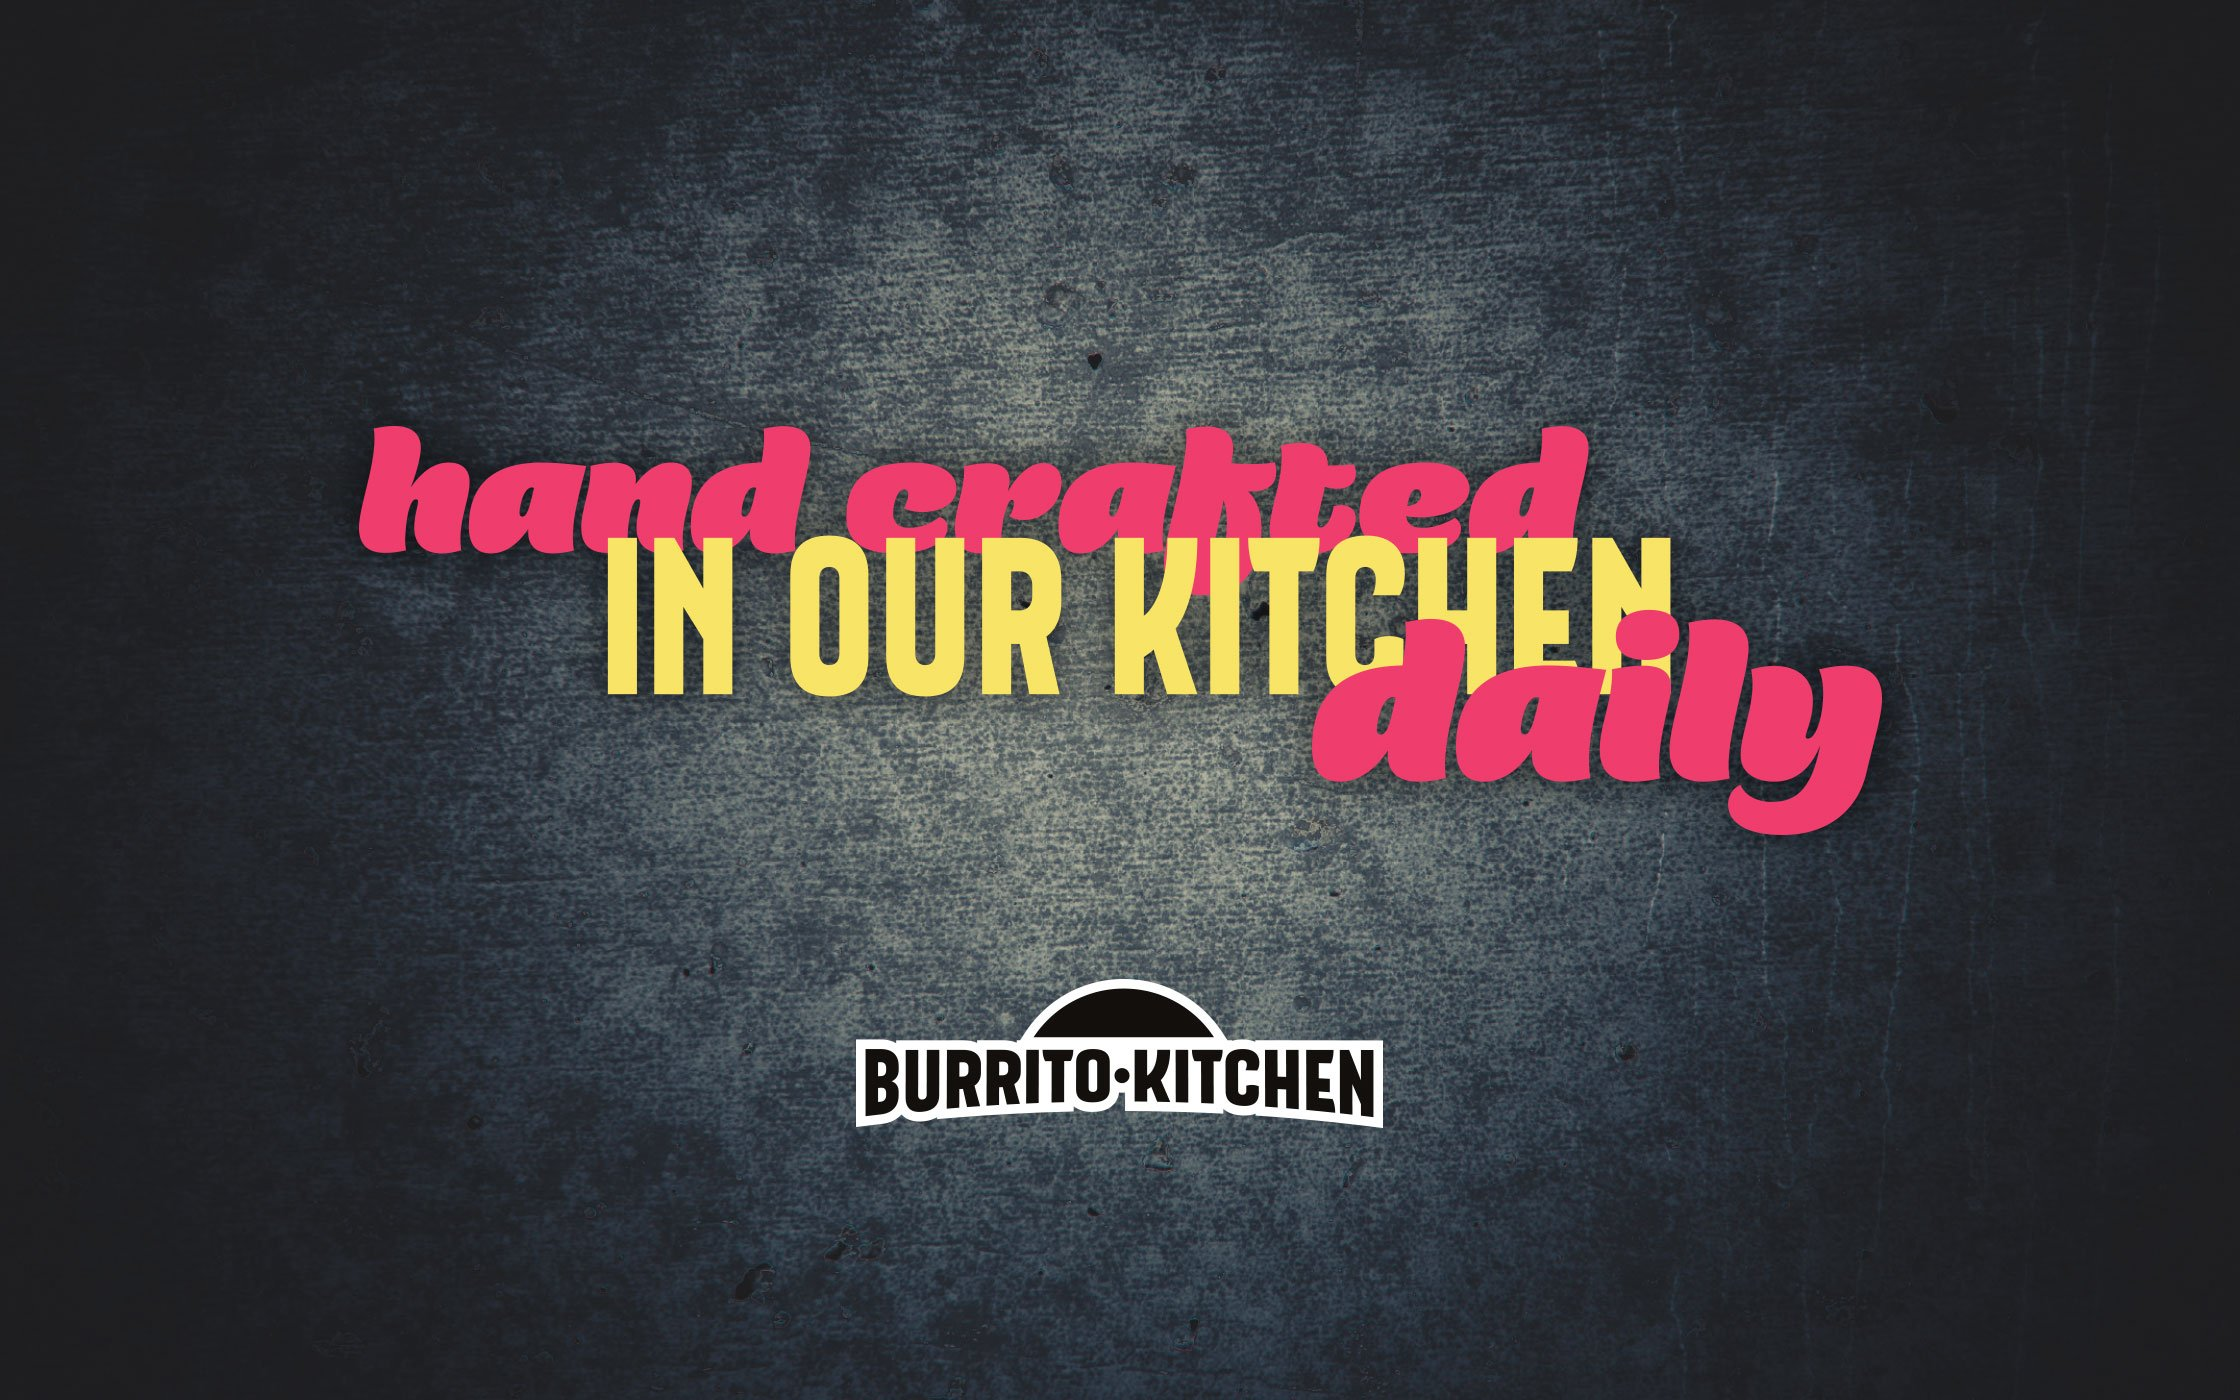 Burrito Kitchen brand message